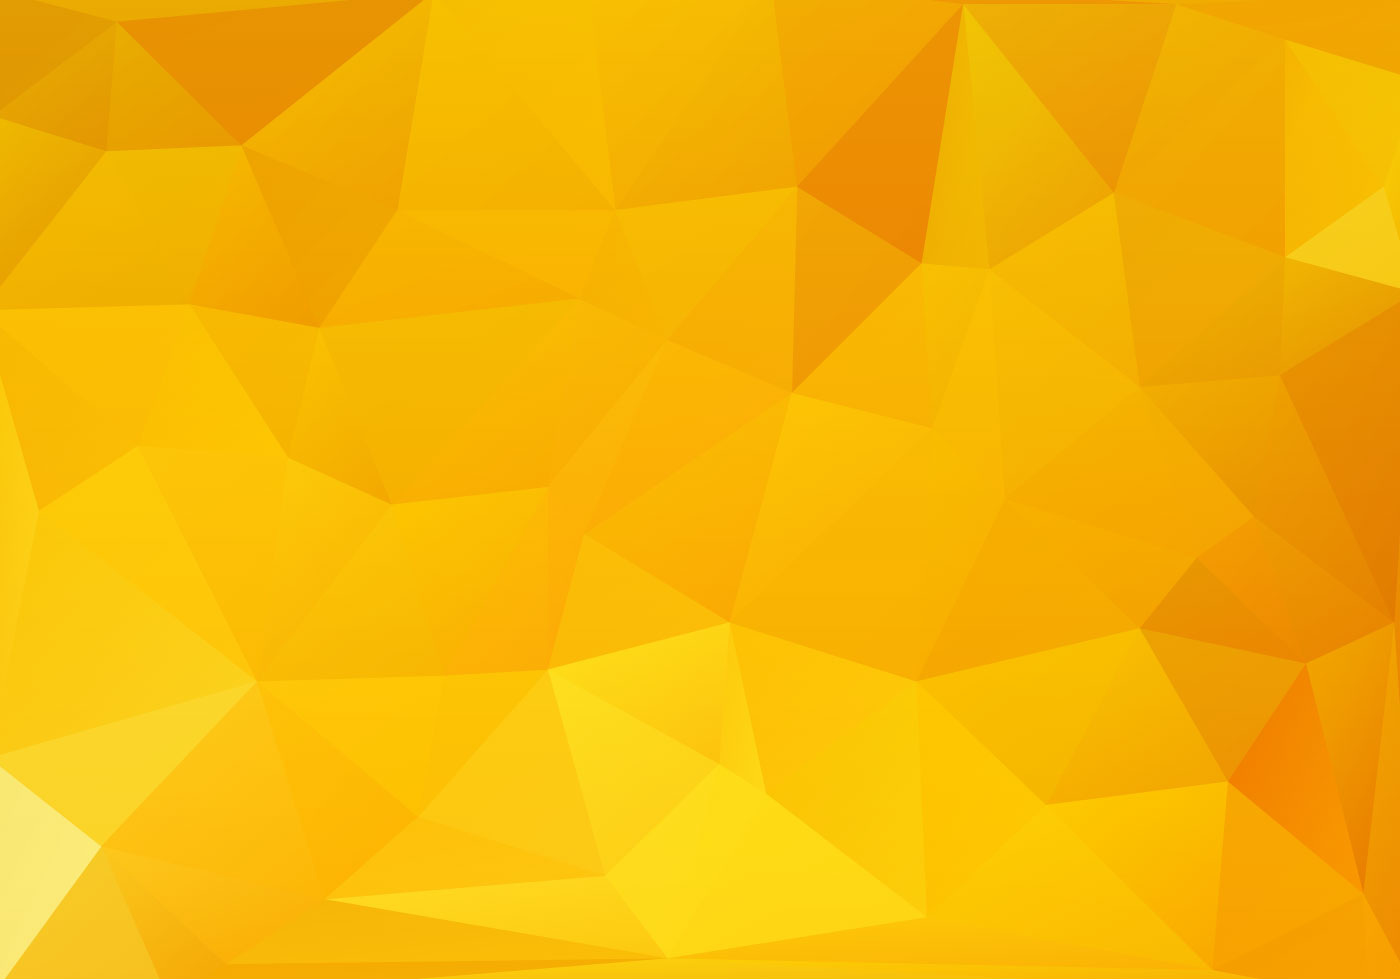 Yellow Abstract Background Free Vector Art - (10,751 Free ...